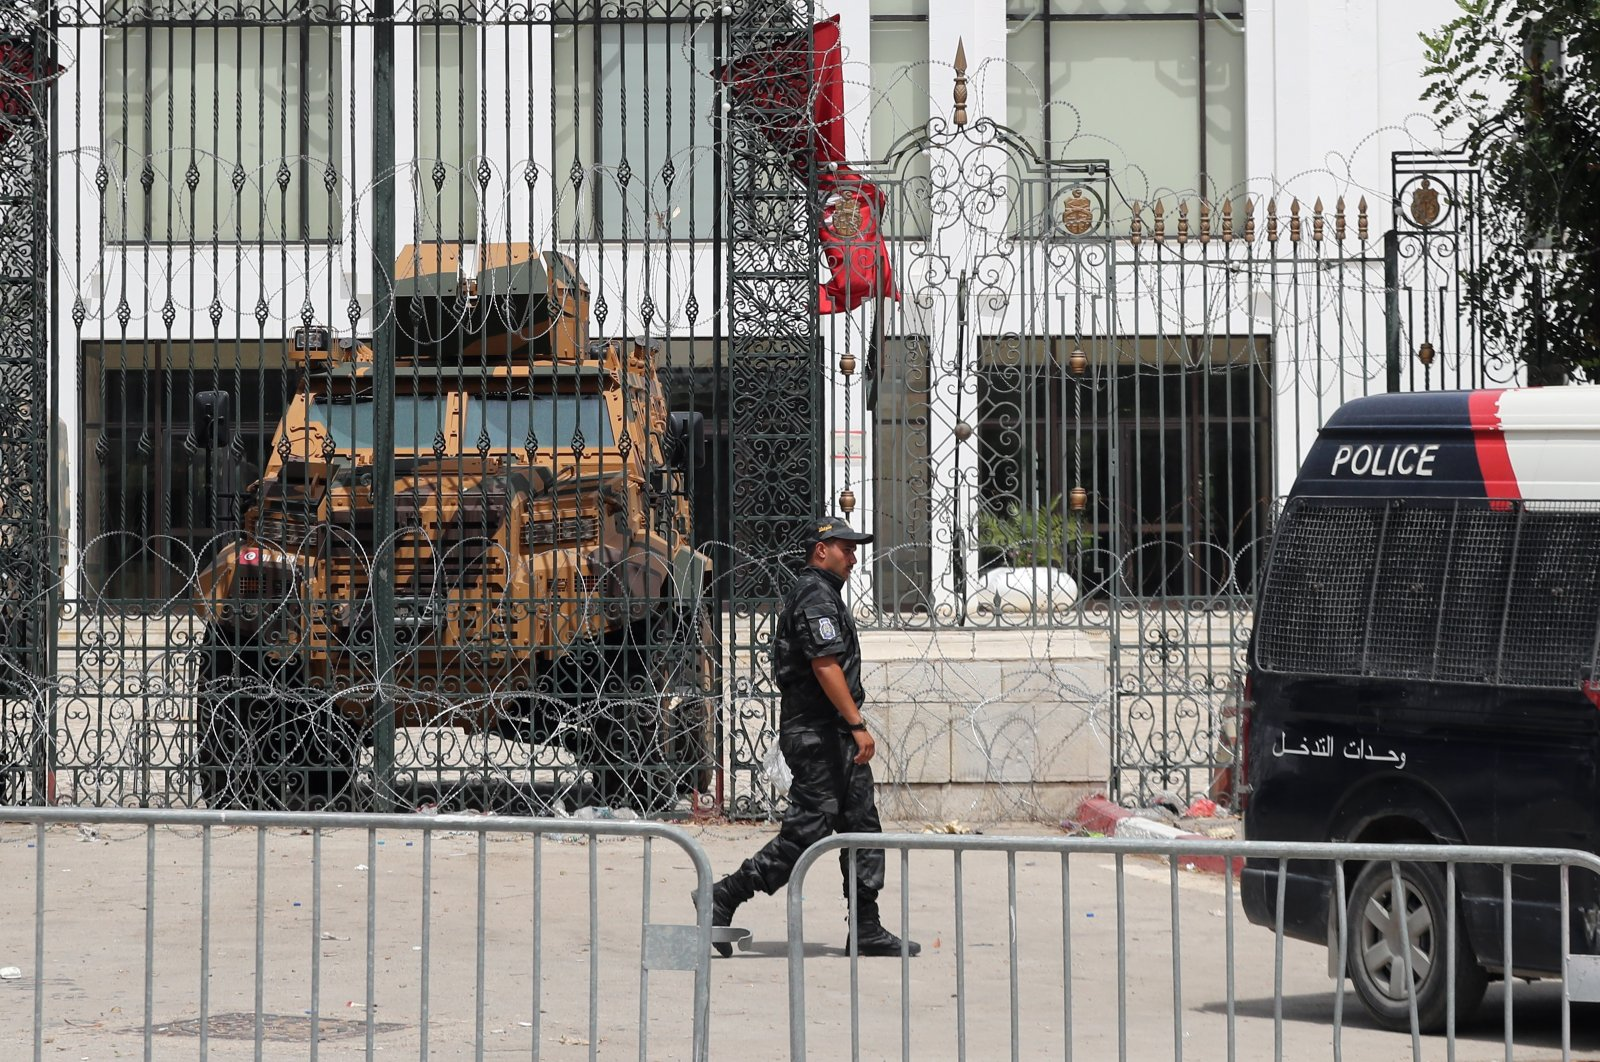 Police cars and a military armored personnel carrier block a side entrance of the Tunisian parliament in Tunis, Tunisia, 01 August 2021. (EPA Photo)